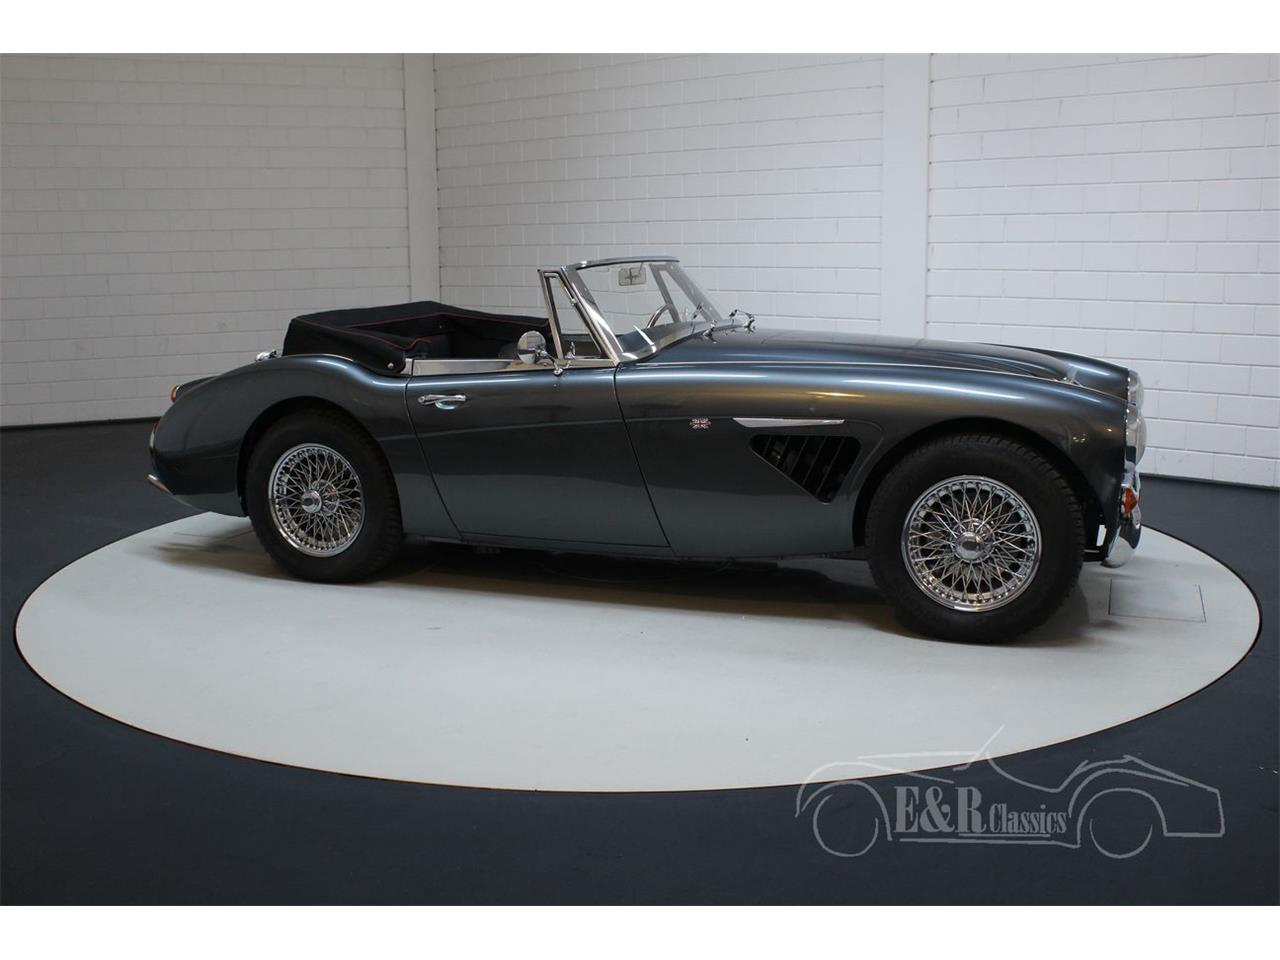 1967 Austin-Healey 3000 Mark III (CC-1367459) for sale in Waalwijk, Noord-Brabant